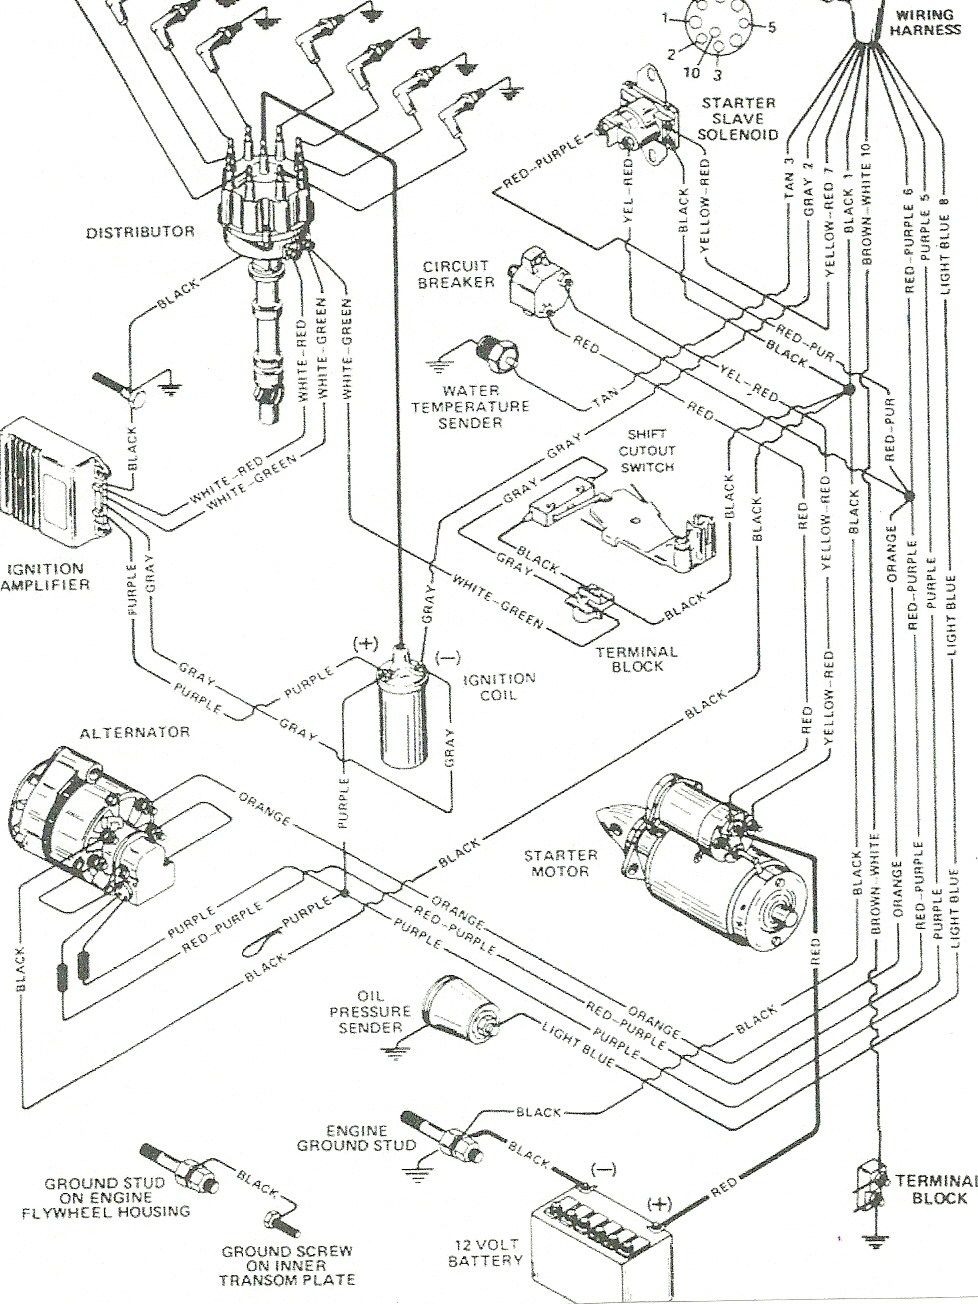 hight resolution of mercruiser 30 wiring diagram wiring diagram mercruiser 140 mercruiser alternator wiring diagram mercruiser 30 wiring